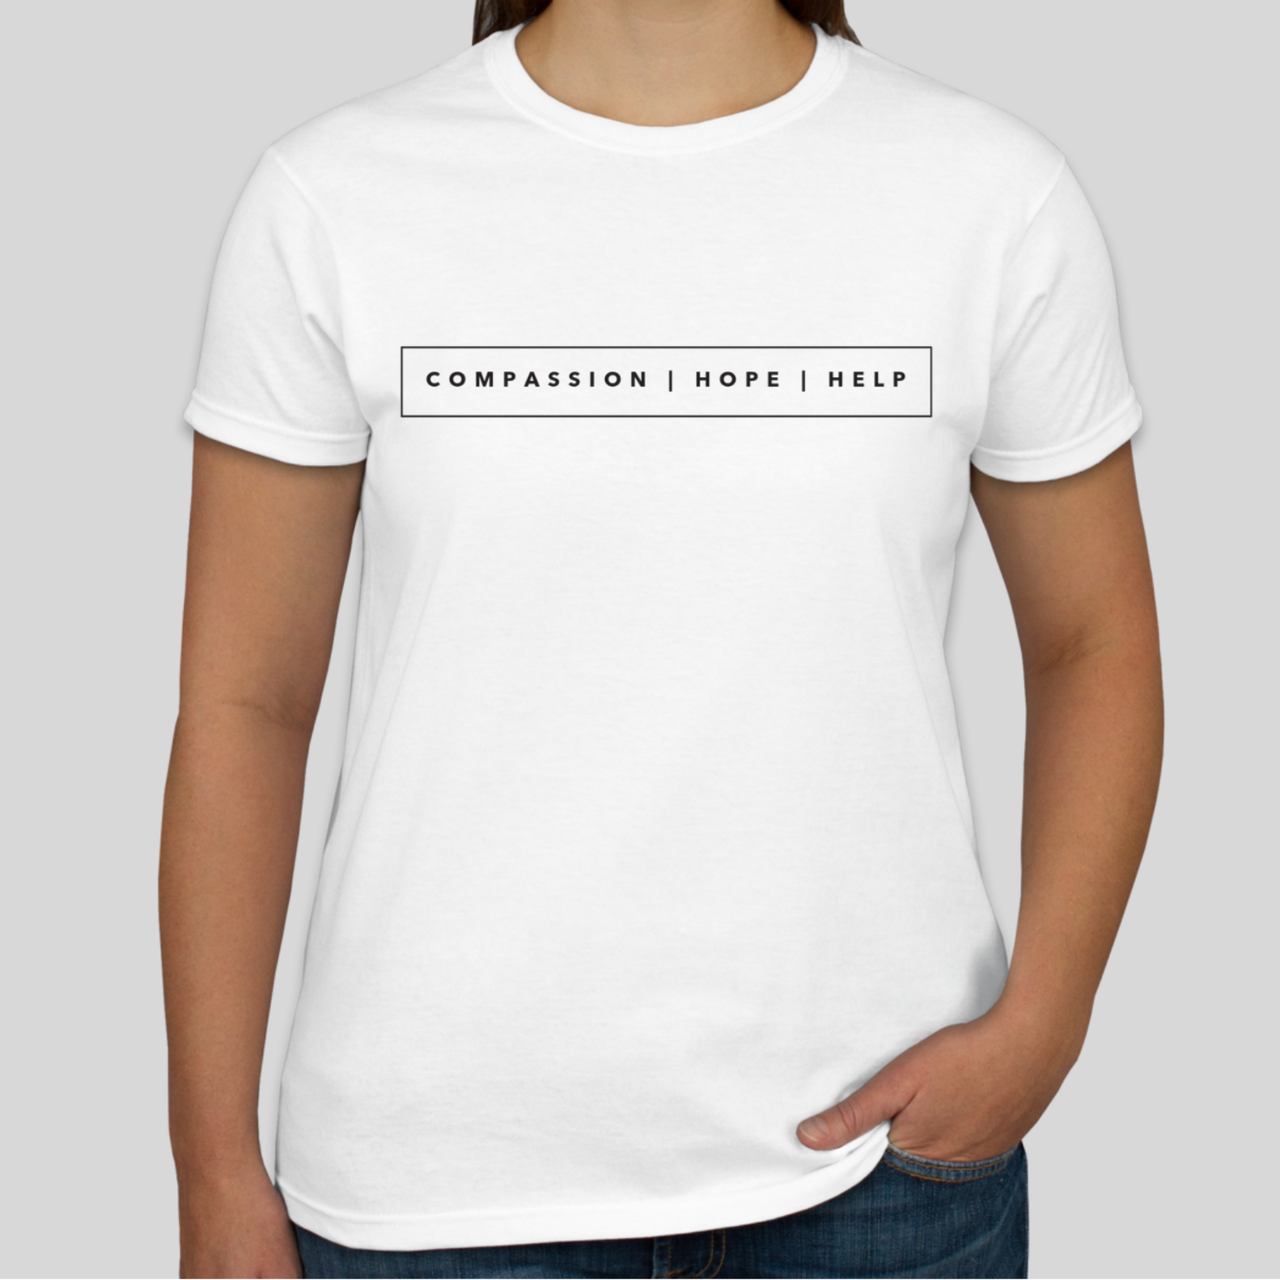 Compassion, Hope, and Help T-Shirt